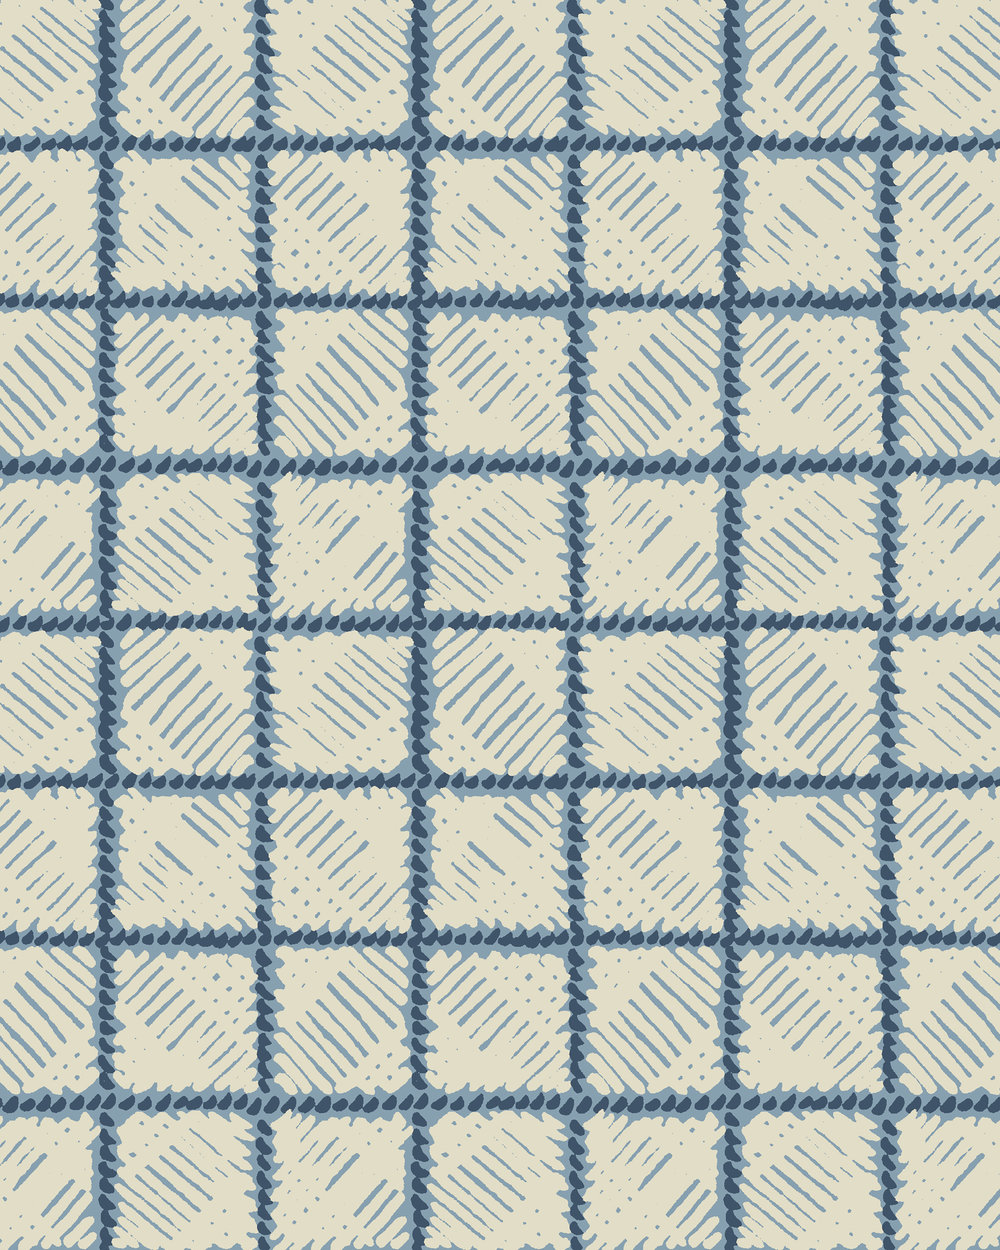 Rattan Grid Repeat Blue Ground White Check.jpg